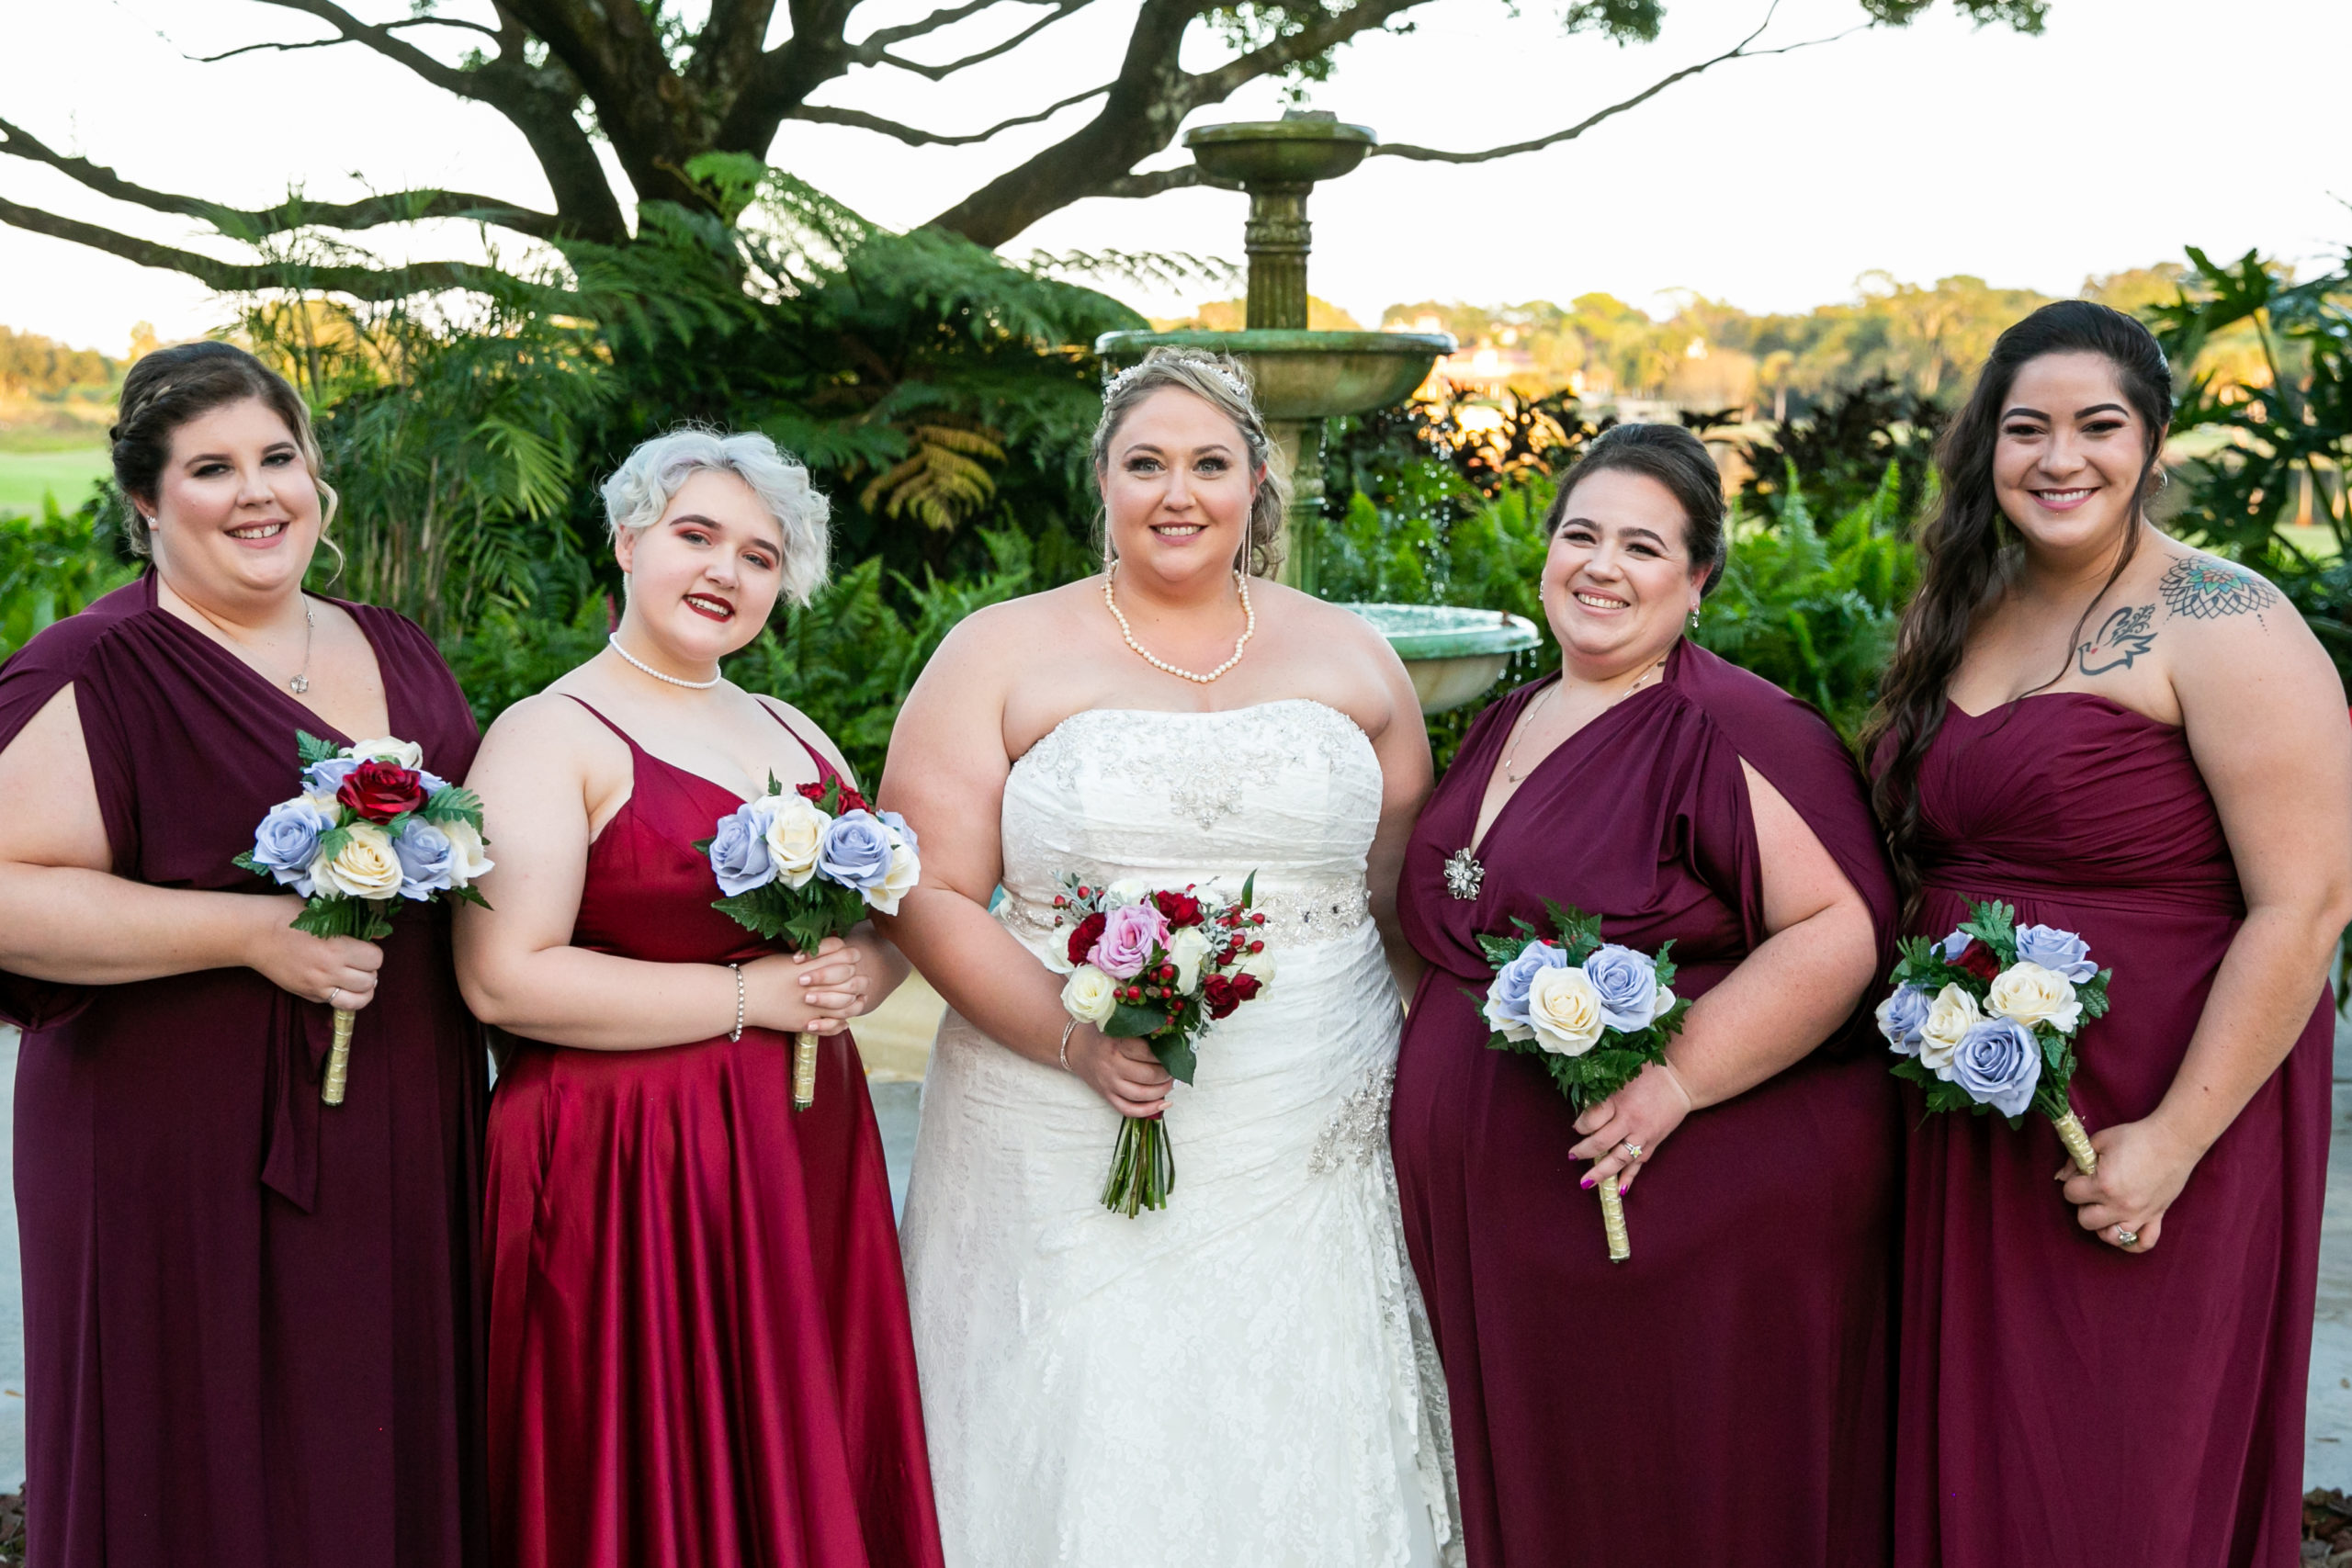 Bridal party in Burgundy for Vineyard Inspired Wedding